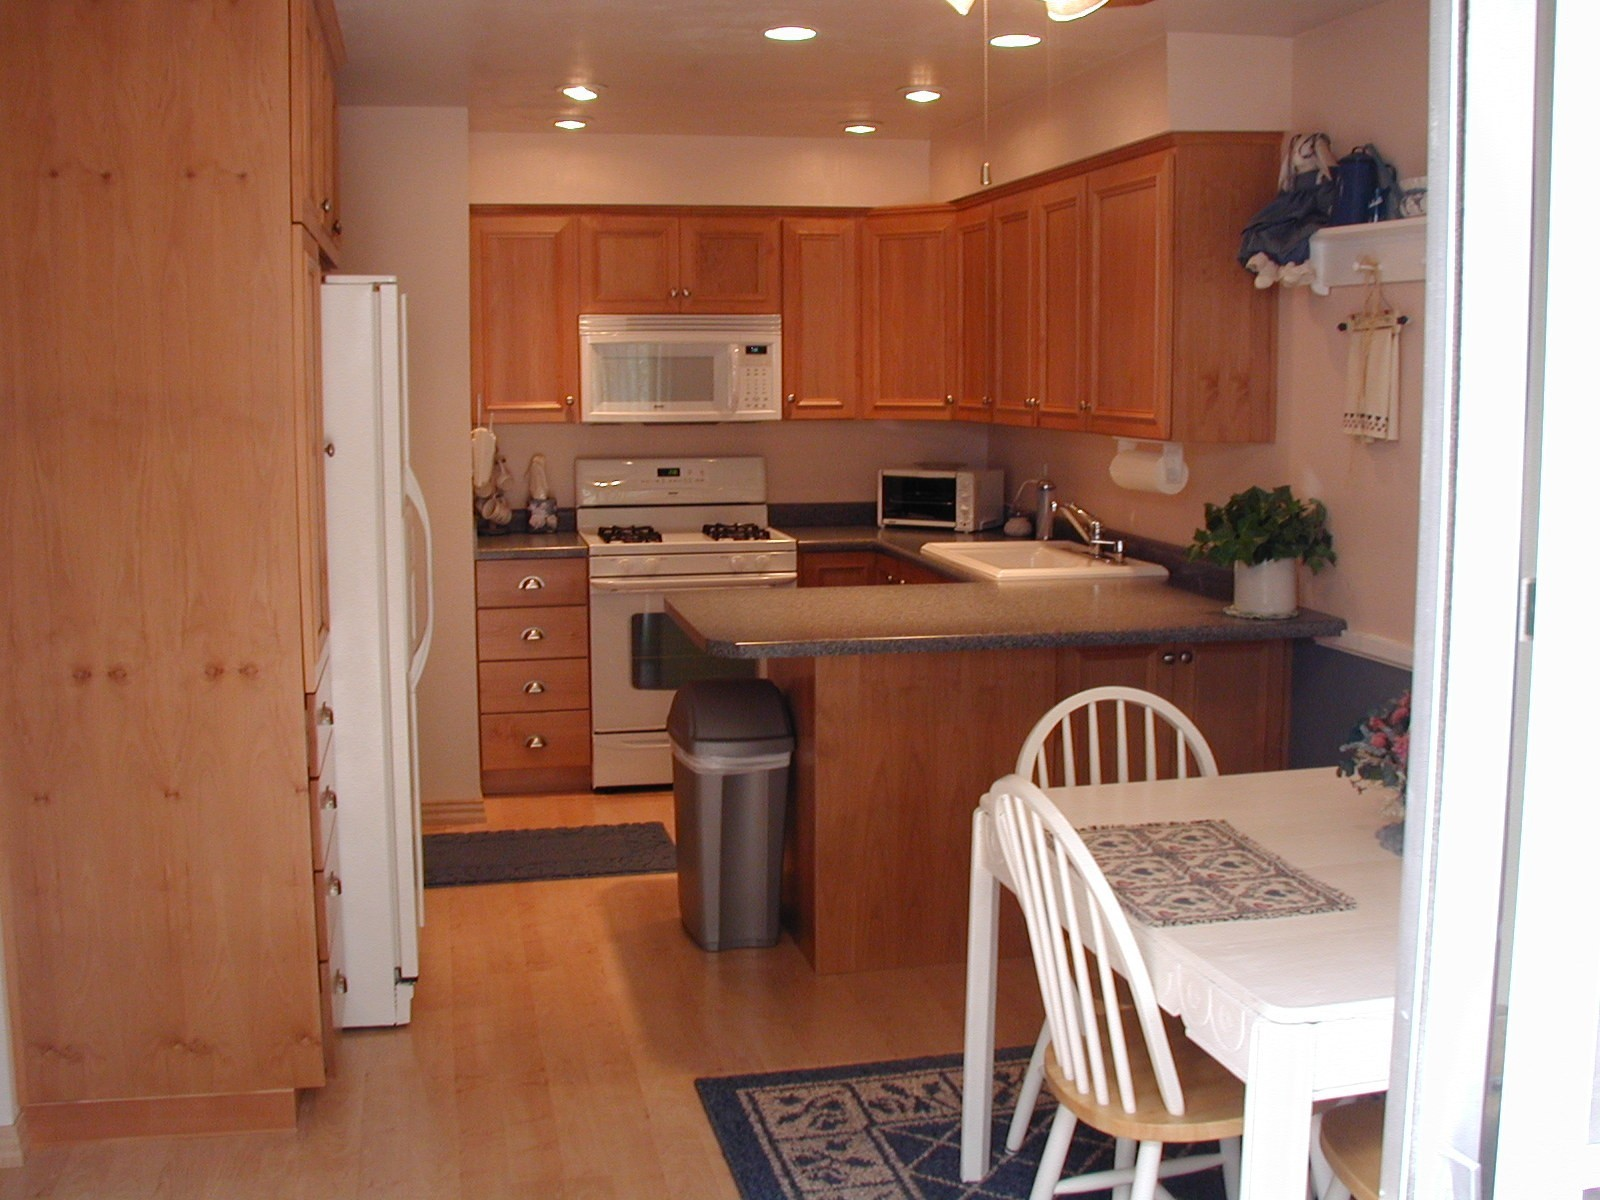 Kitchen Cabinets Kitchen 3jpg